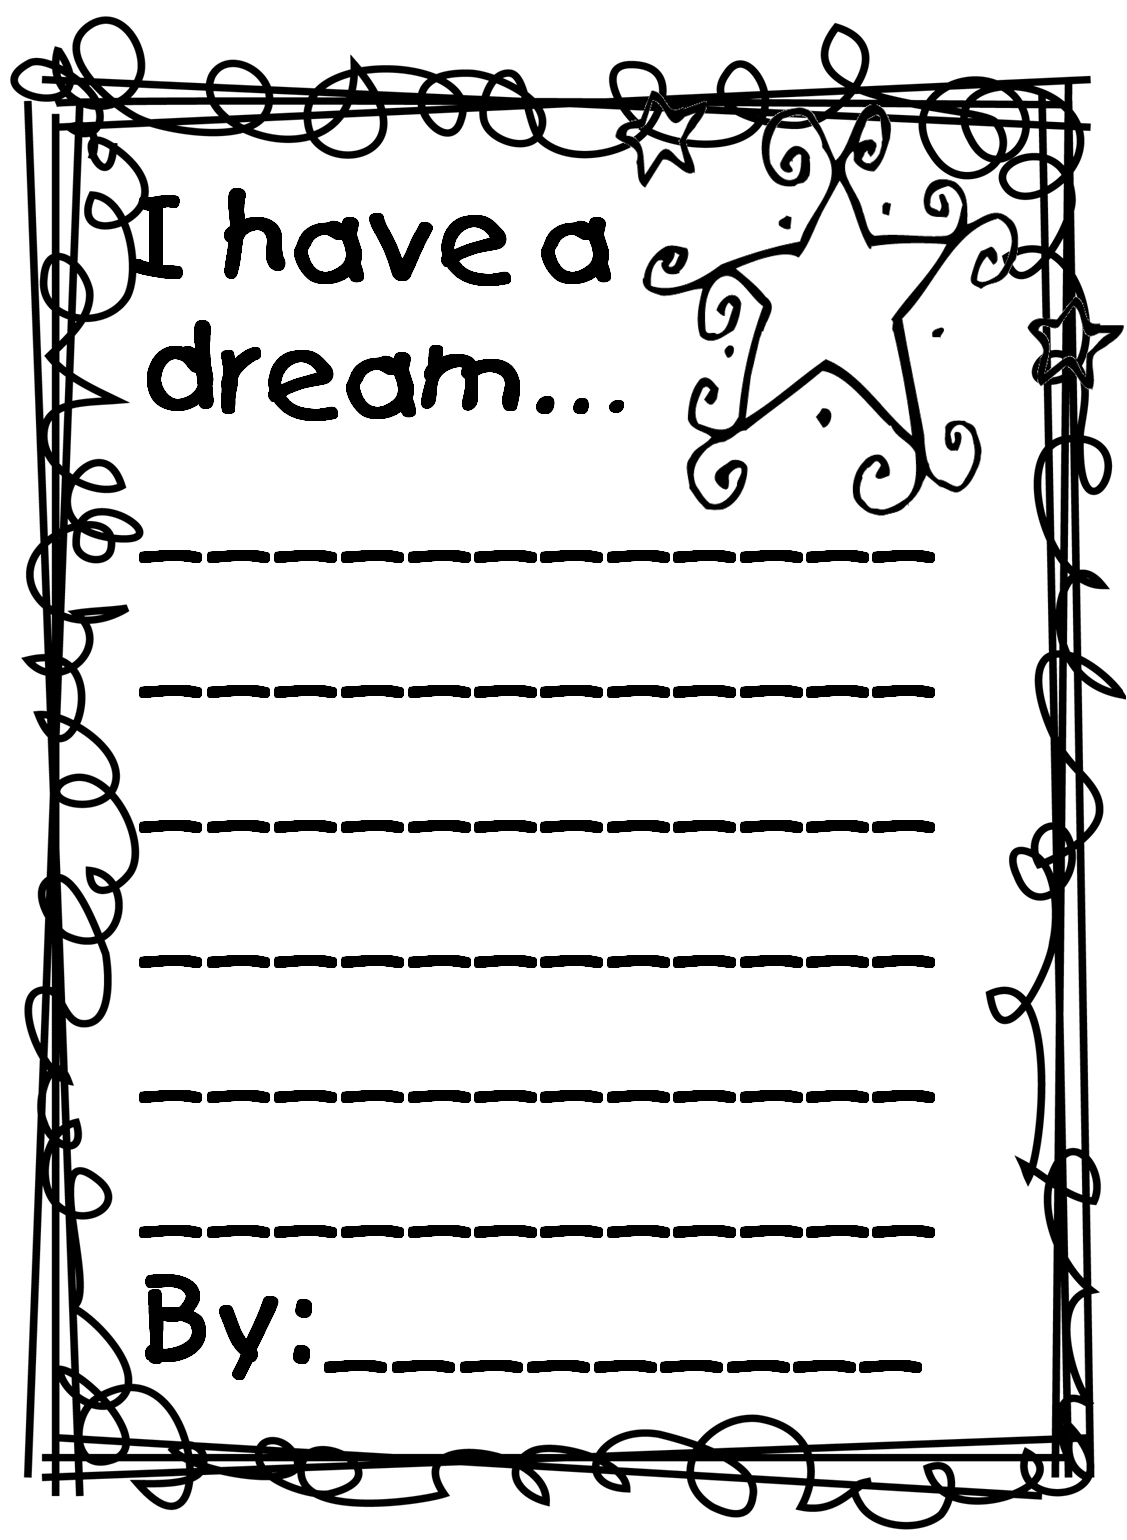 Martin Luther King Jr Worksheet For 2nd Grade